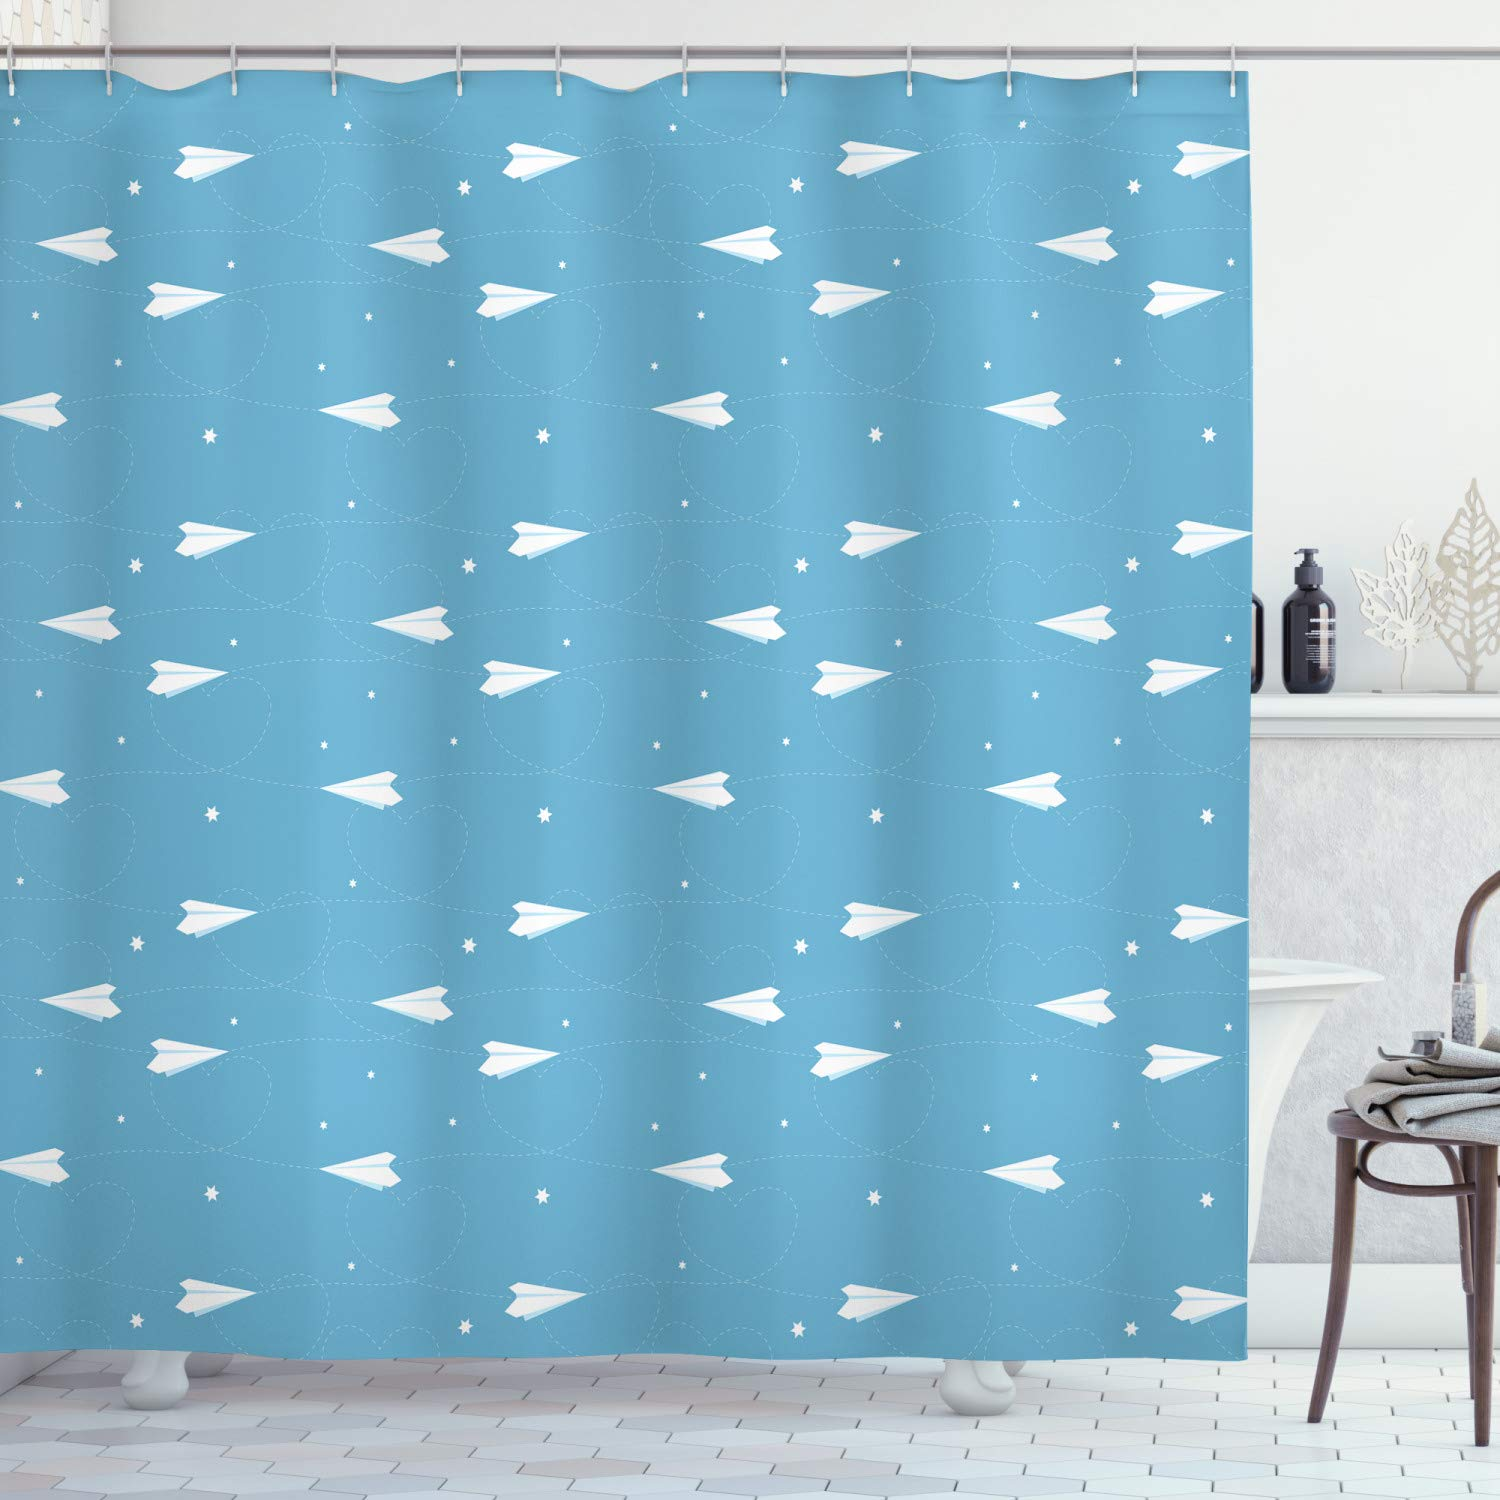 Abakuhaus Nursery Airplane Shower Curtain Kids Fun Play Theme Paper Routes As Heart Shapes And Stars Cloth Fabric Bathroom Decor Set With Hooks 78 Inches Blue White Buy Online In